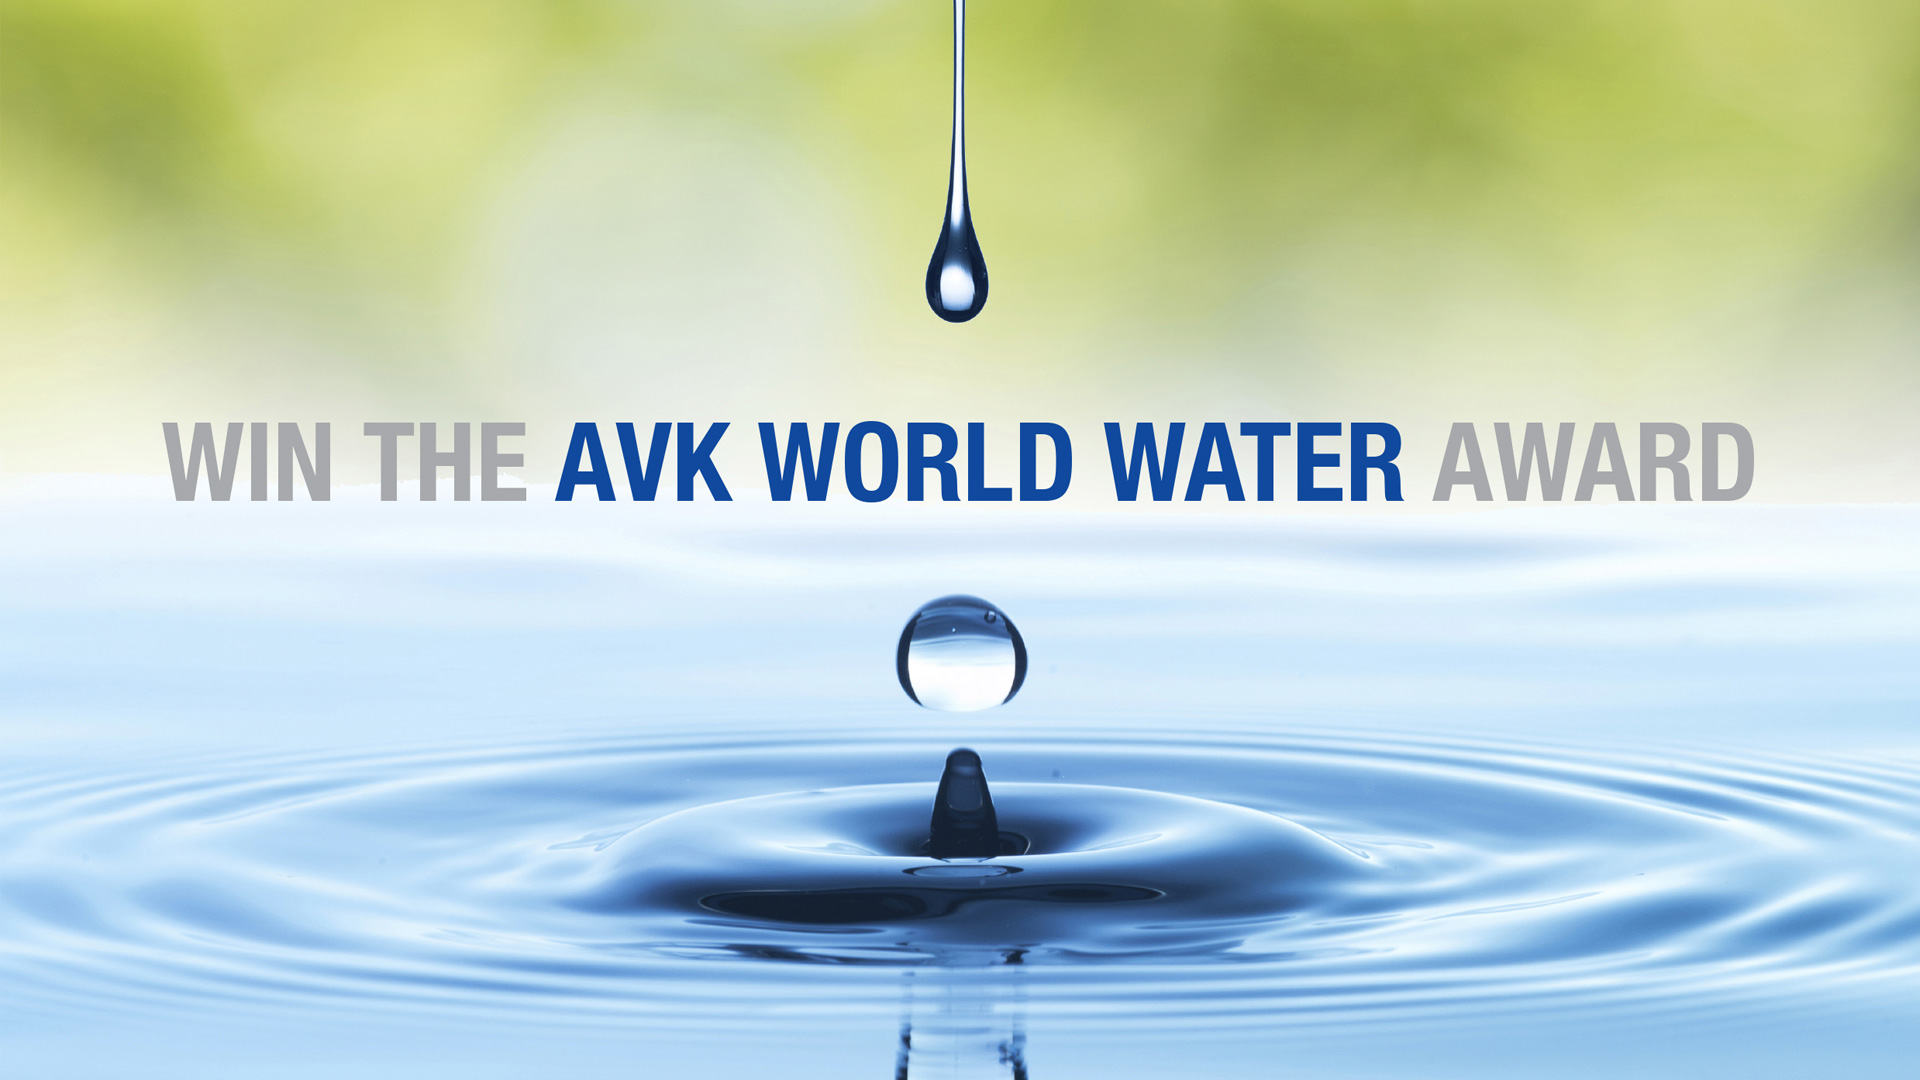 AVK World Water Award